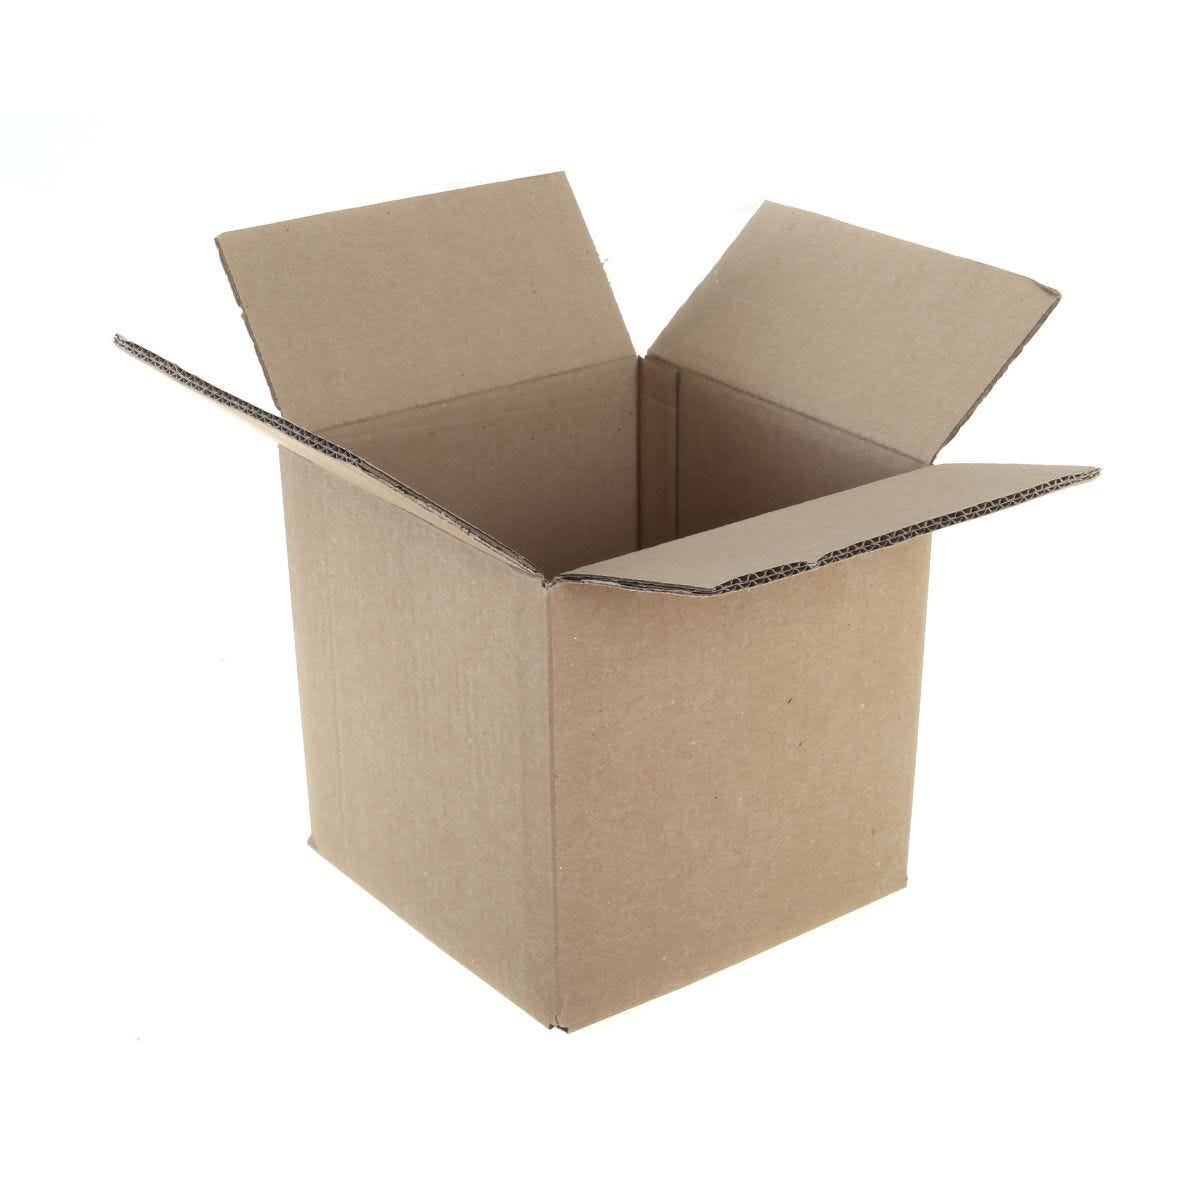 Double Walled Cartons Box 200x200x200 Pack of 15